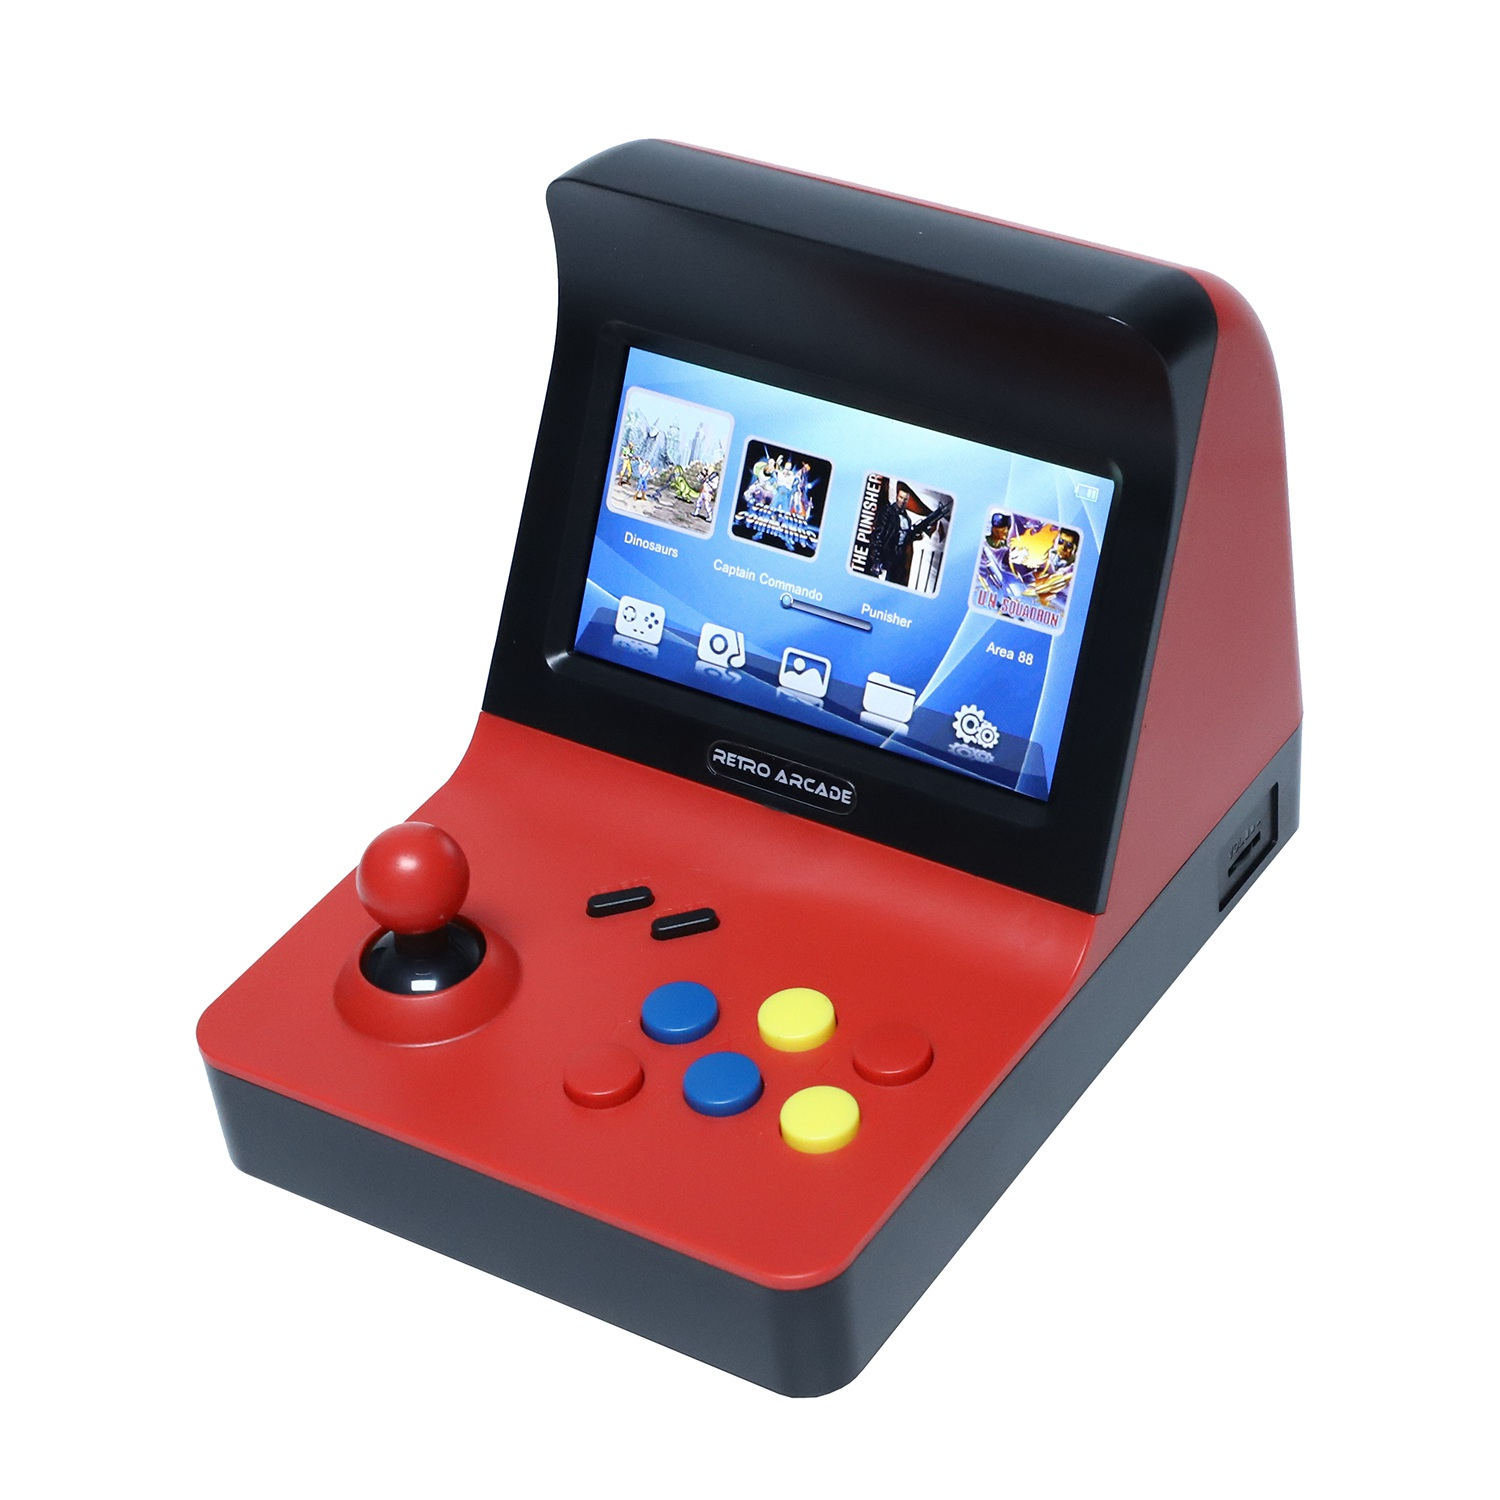 Powkiddy A8 Retro Arcade Console Game Console Gaming Machine Built-In 3000 Classic Games Gamepad Control AV Out 4.3 Inch Scree